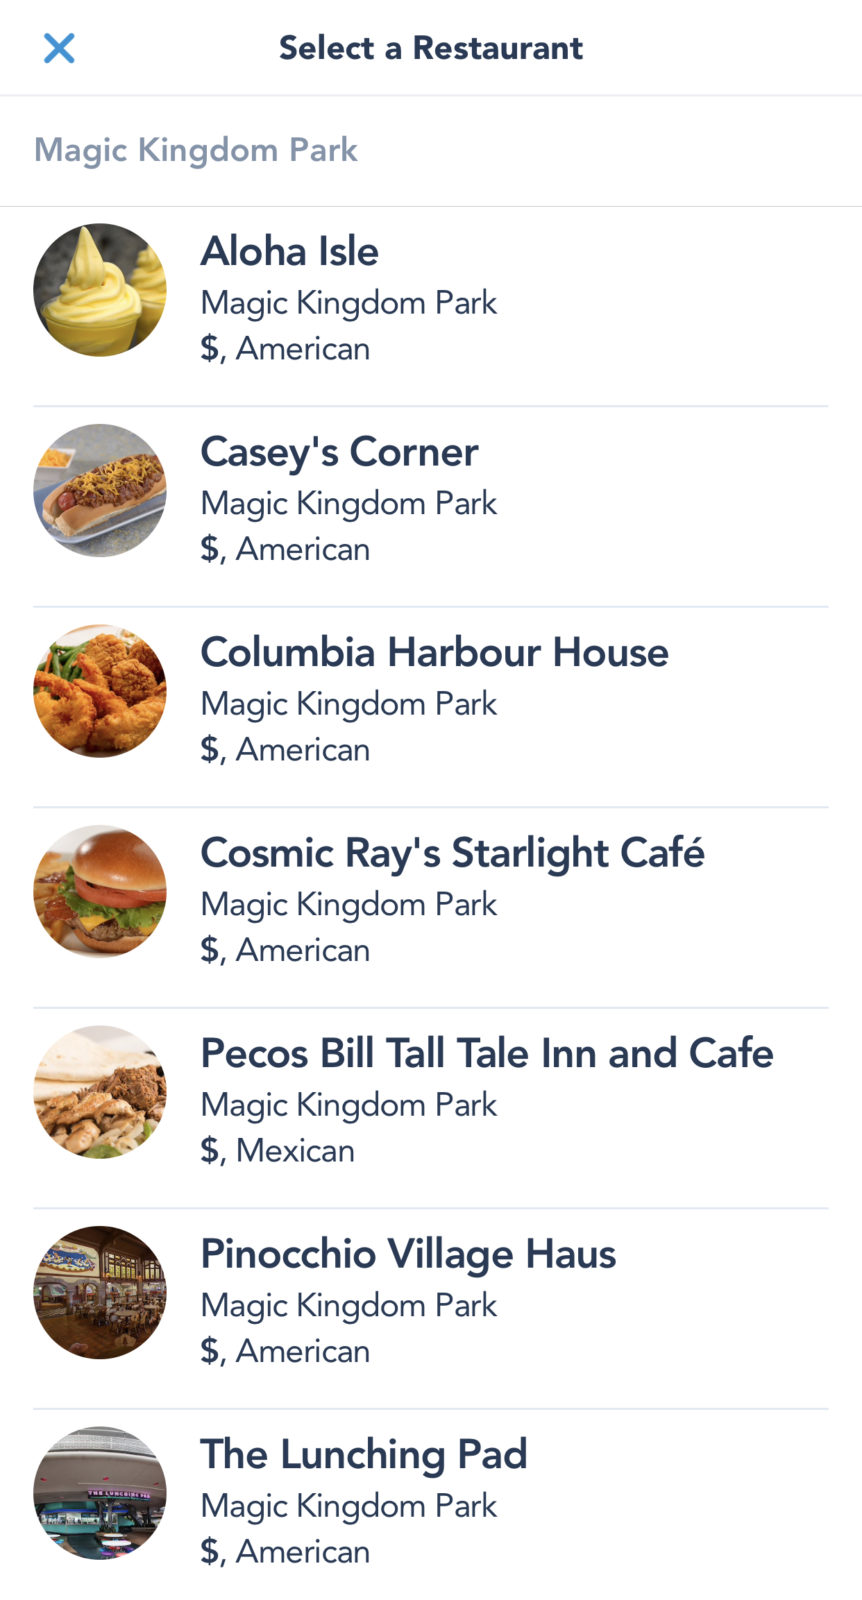 Mobile Ordering Theme Park Tips